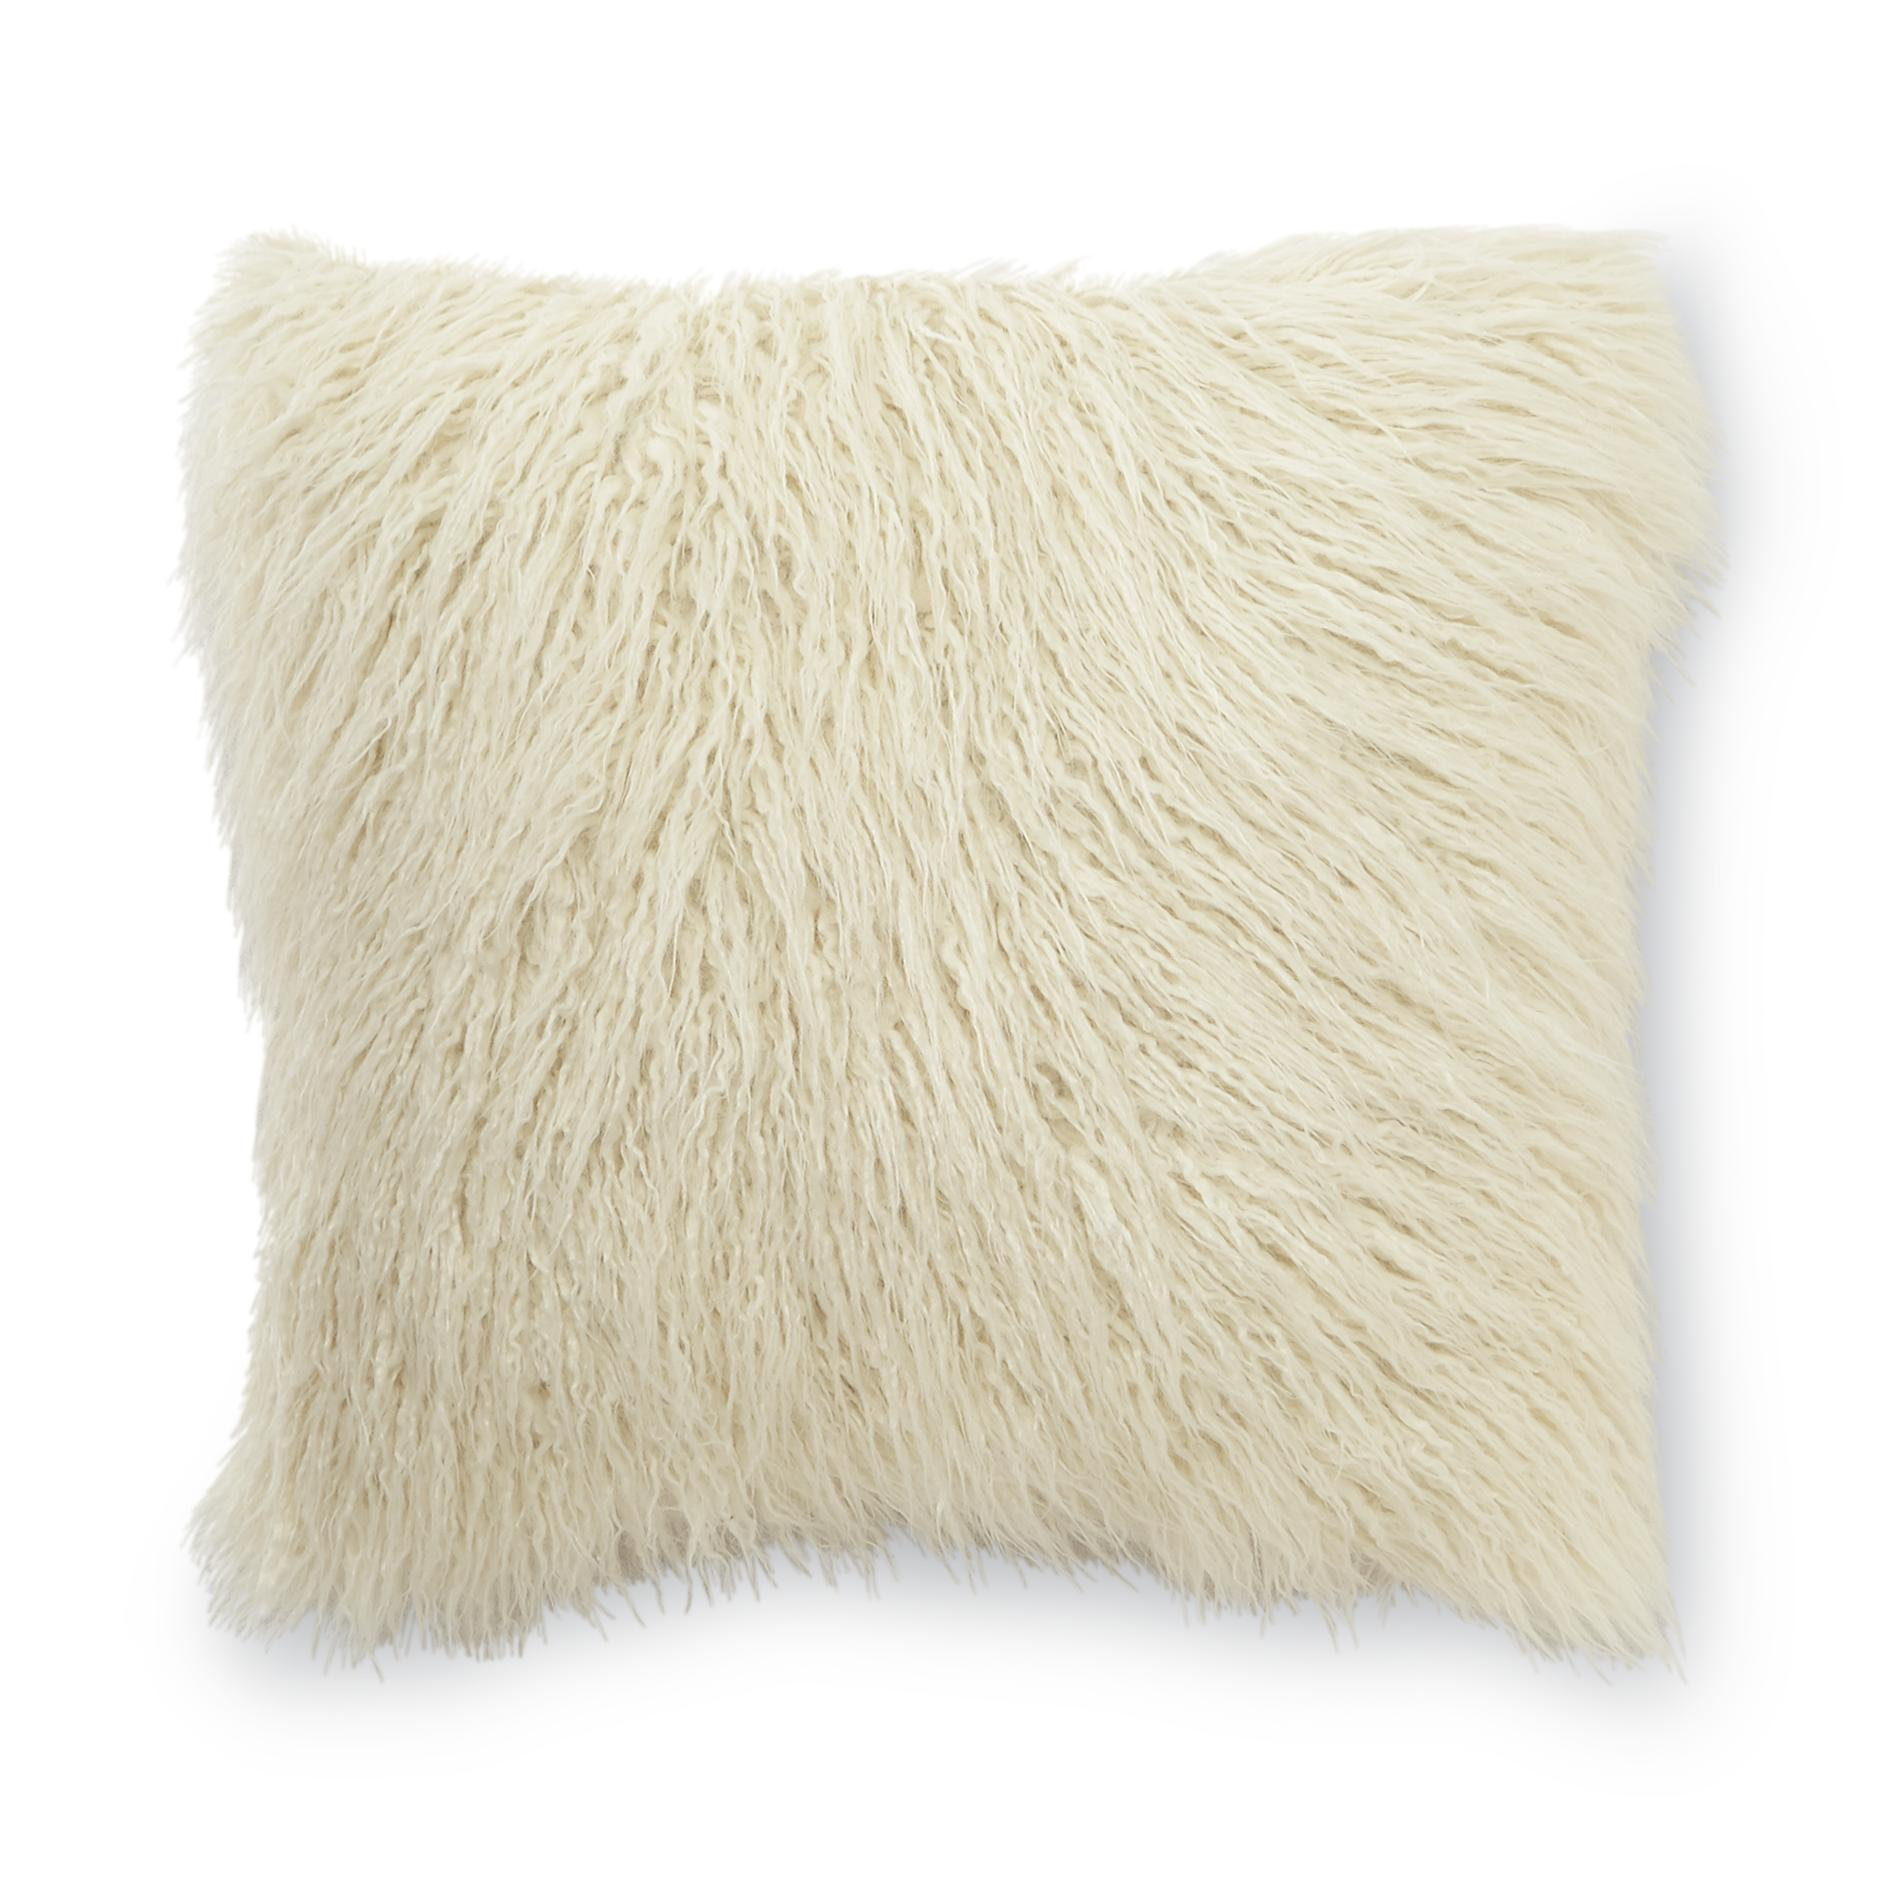 Decorative Pillows Kmart : Essential Home Mongolian Faux Fur Square Decorative Pillow